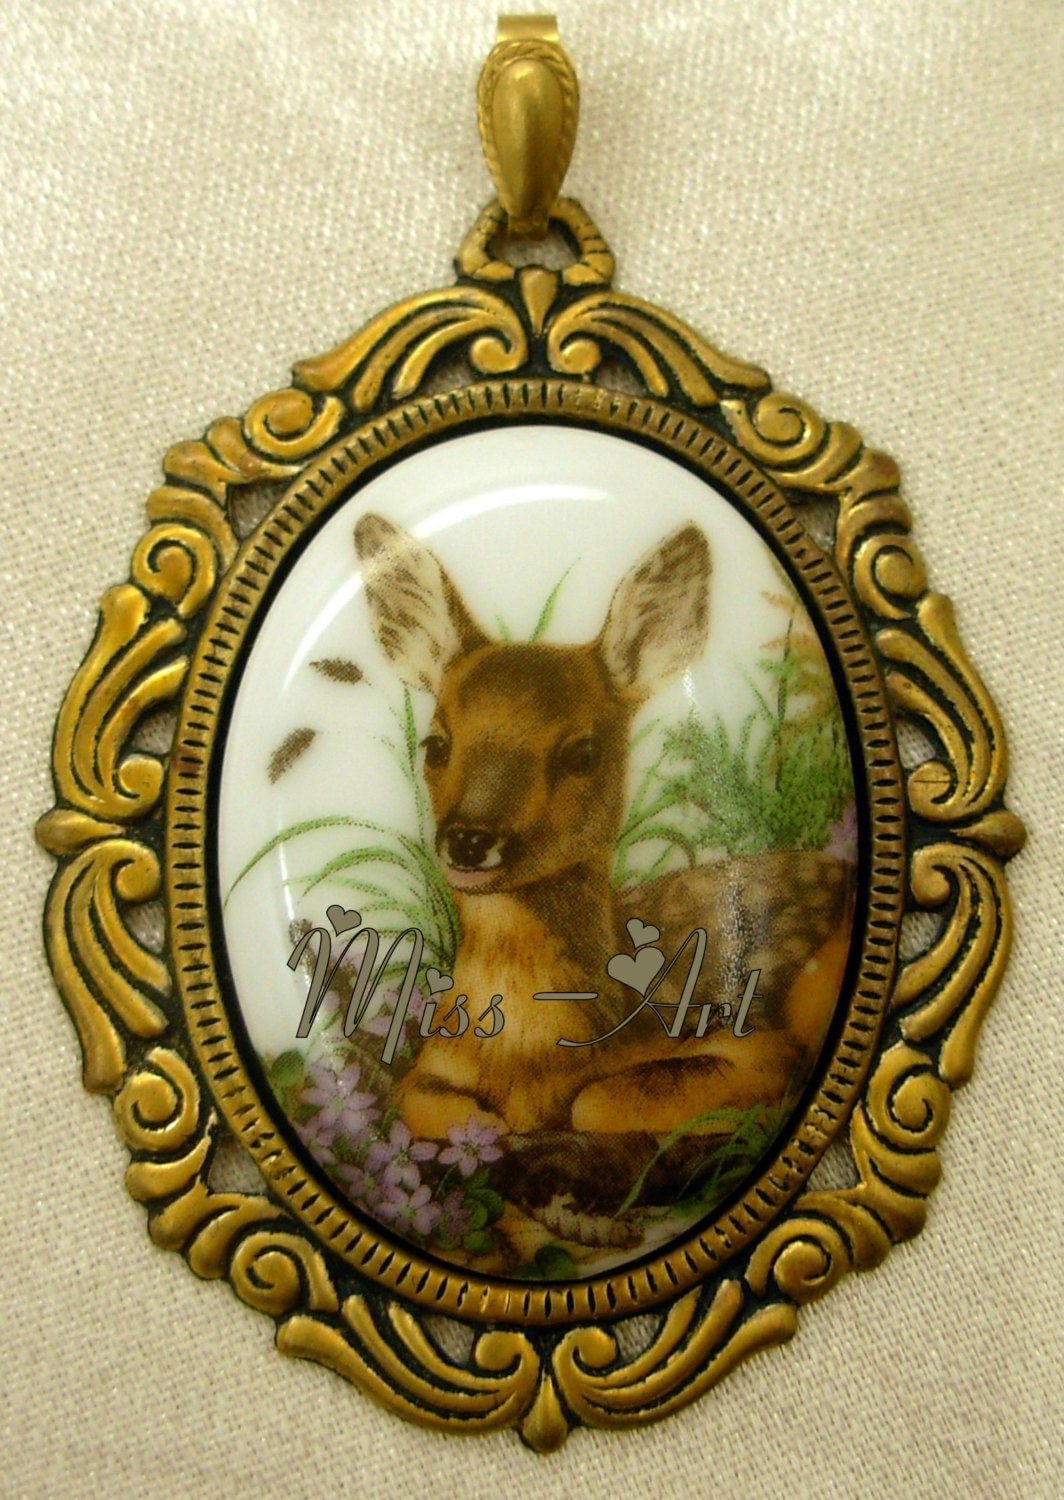 BAMBI Fawn Deer In Flowers Porcelain Cameo Solid Bronze Pendant Necklace OR Brooch OOAK Miss-art - SparklingTreasures2U